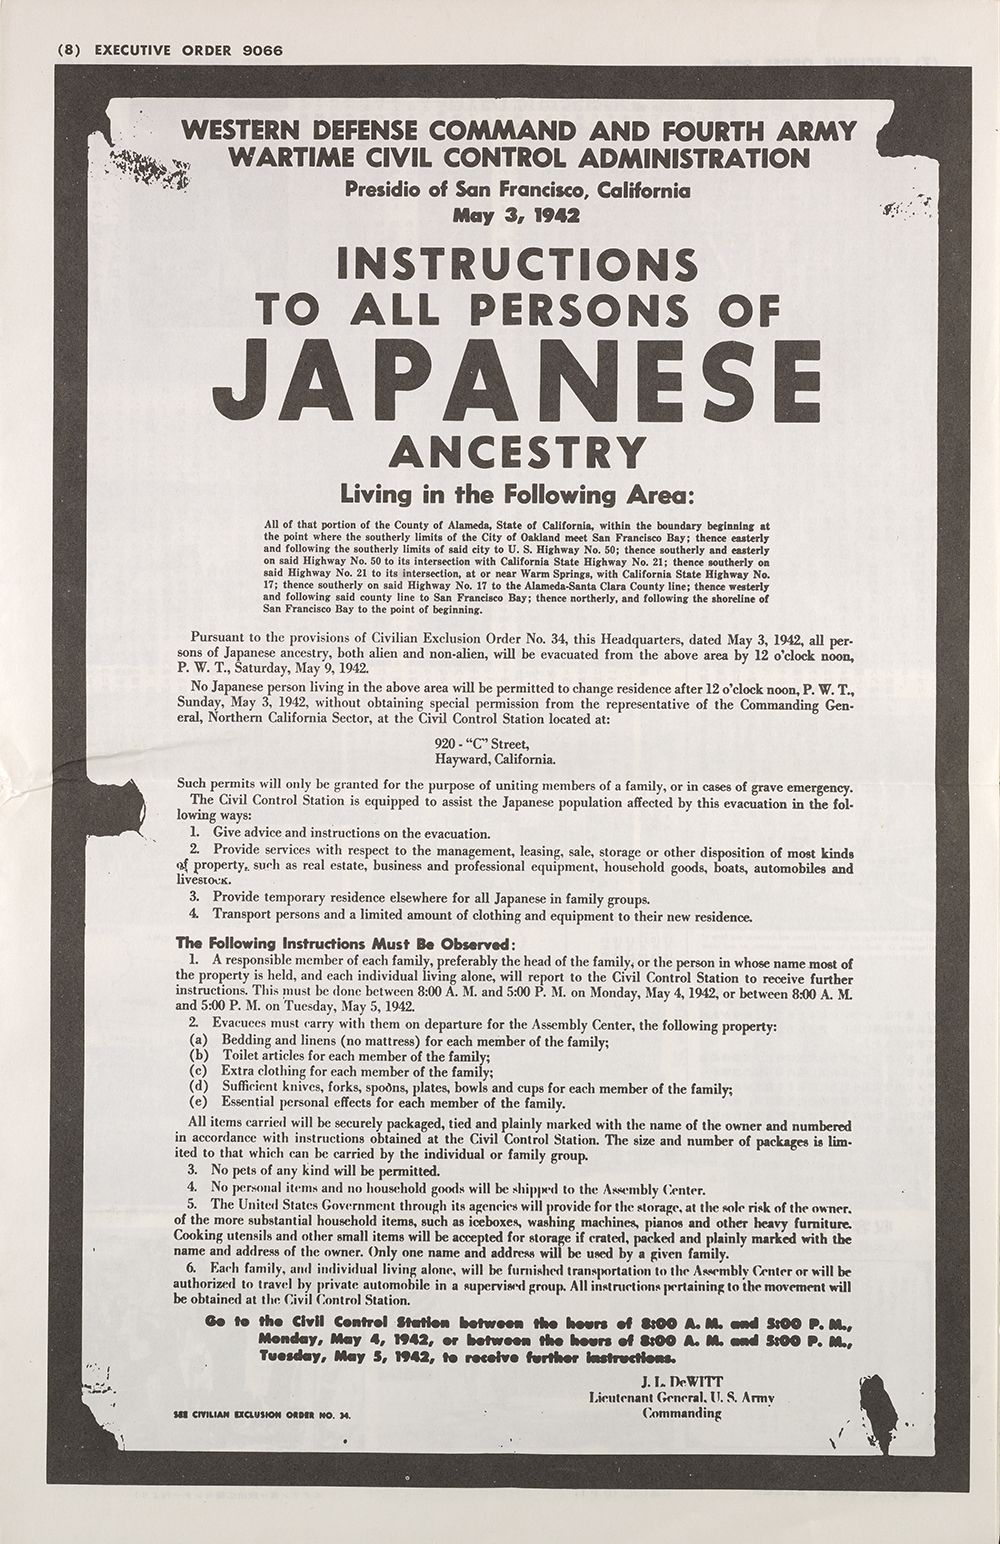 Facsimile of Executive Order 9066